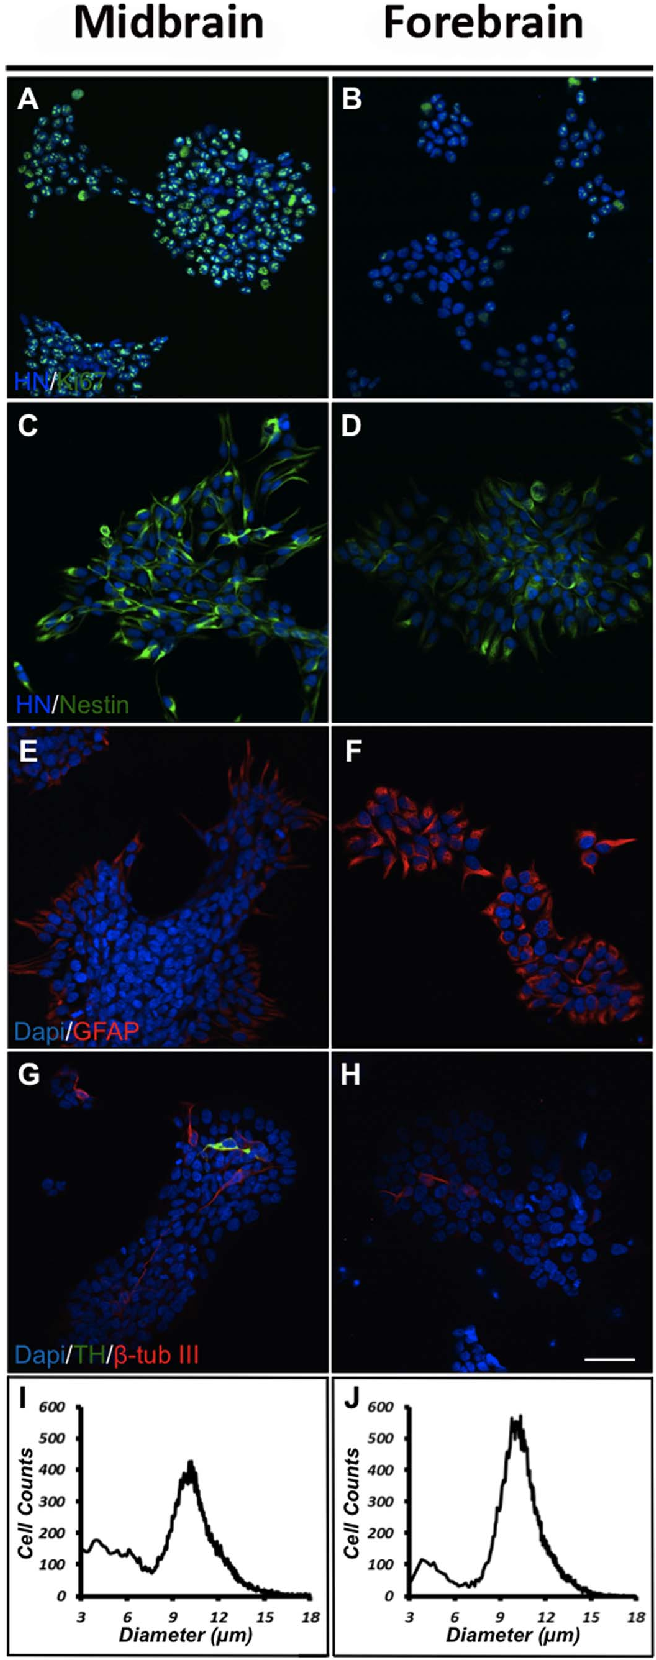 Figure 1. Characterization of proliferating cells. Human midbrain and forebrain neural stem cells (NSCs) were propagated (EGF and bFGF) for 3 days at high oxygen tension (20% O2) and immunostained for human nuclei (HN) and the proliferation marker Ki67 (A,B). For both cultures a high density of Ki67-immunoreactive (-ir) cells were seen, although at a higher density in midbrain as compared to forebrain